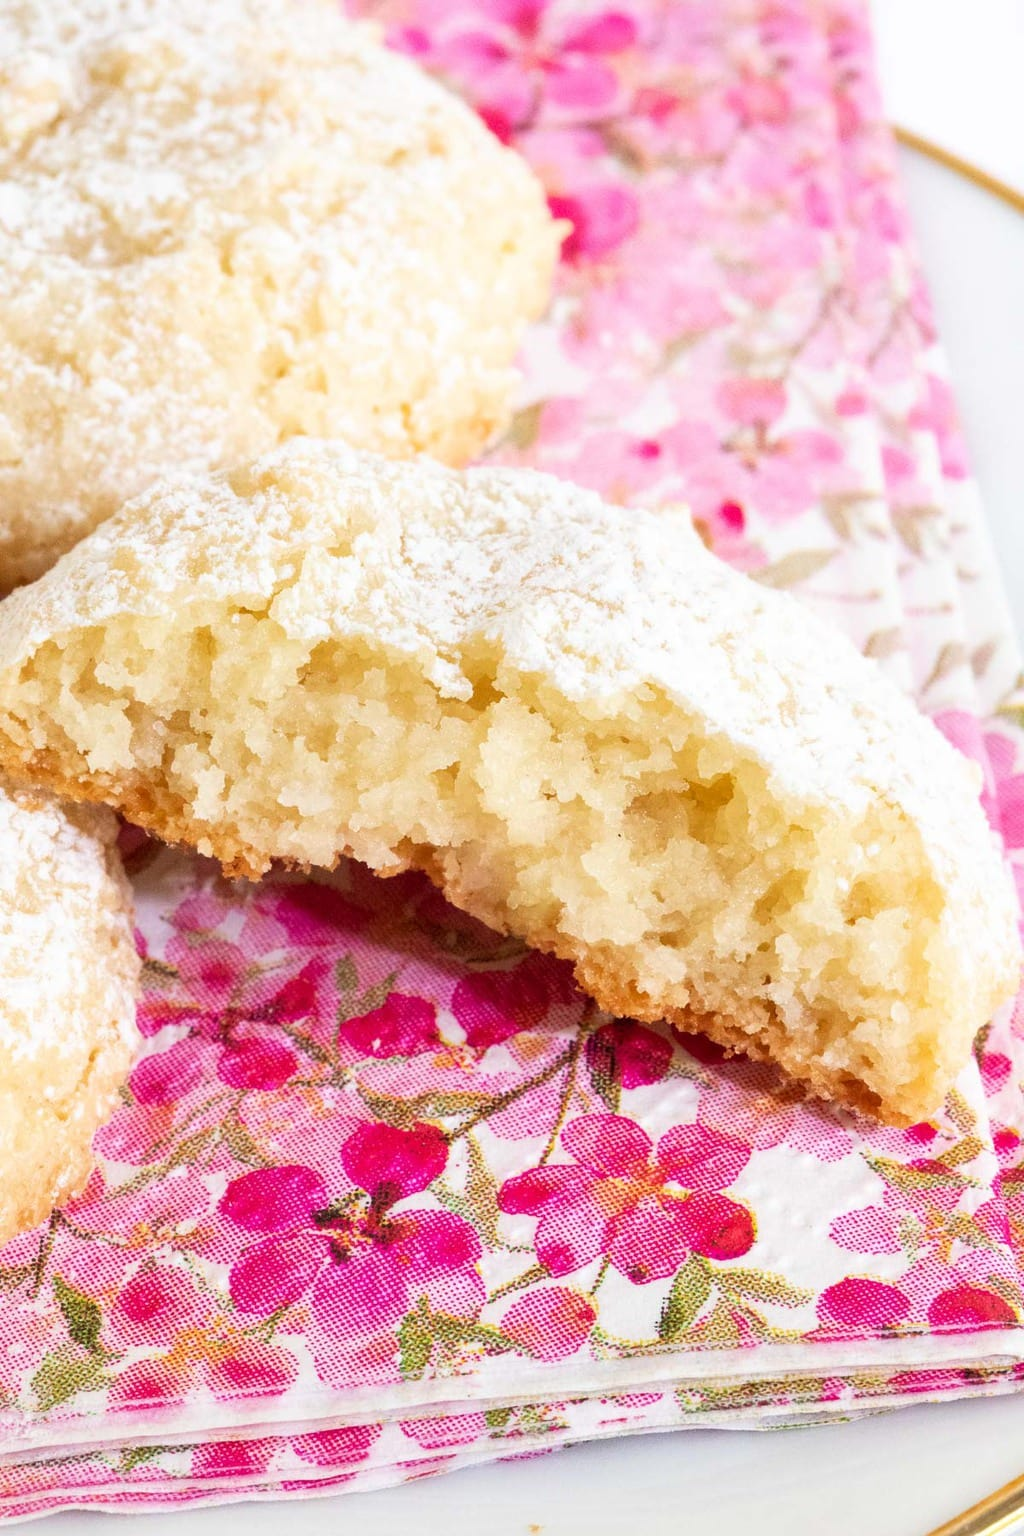 Vertical extreme closeup photo of the inside of a Ridiculously Easy French Almond Cookie on a pink, gold and white patterned napkin.